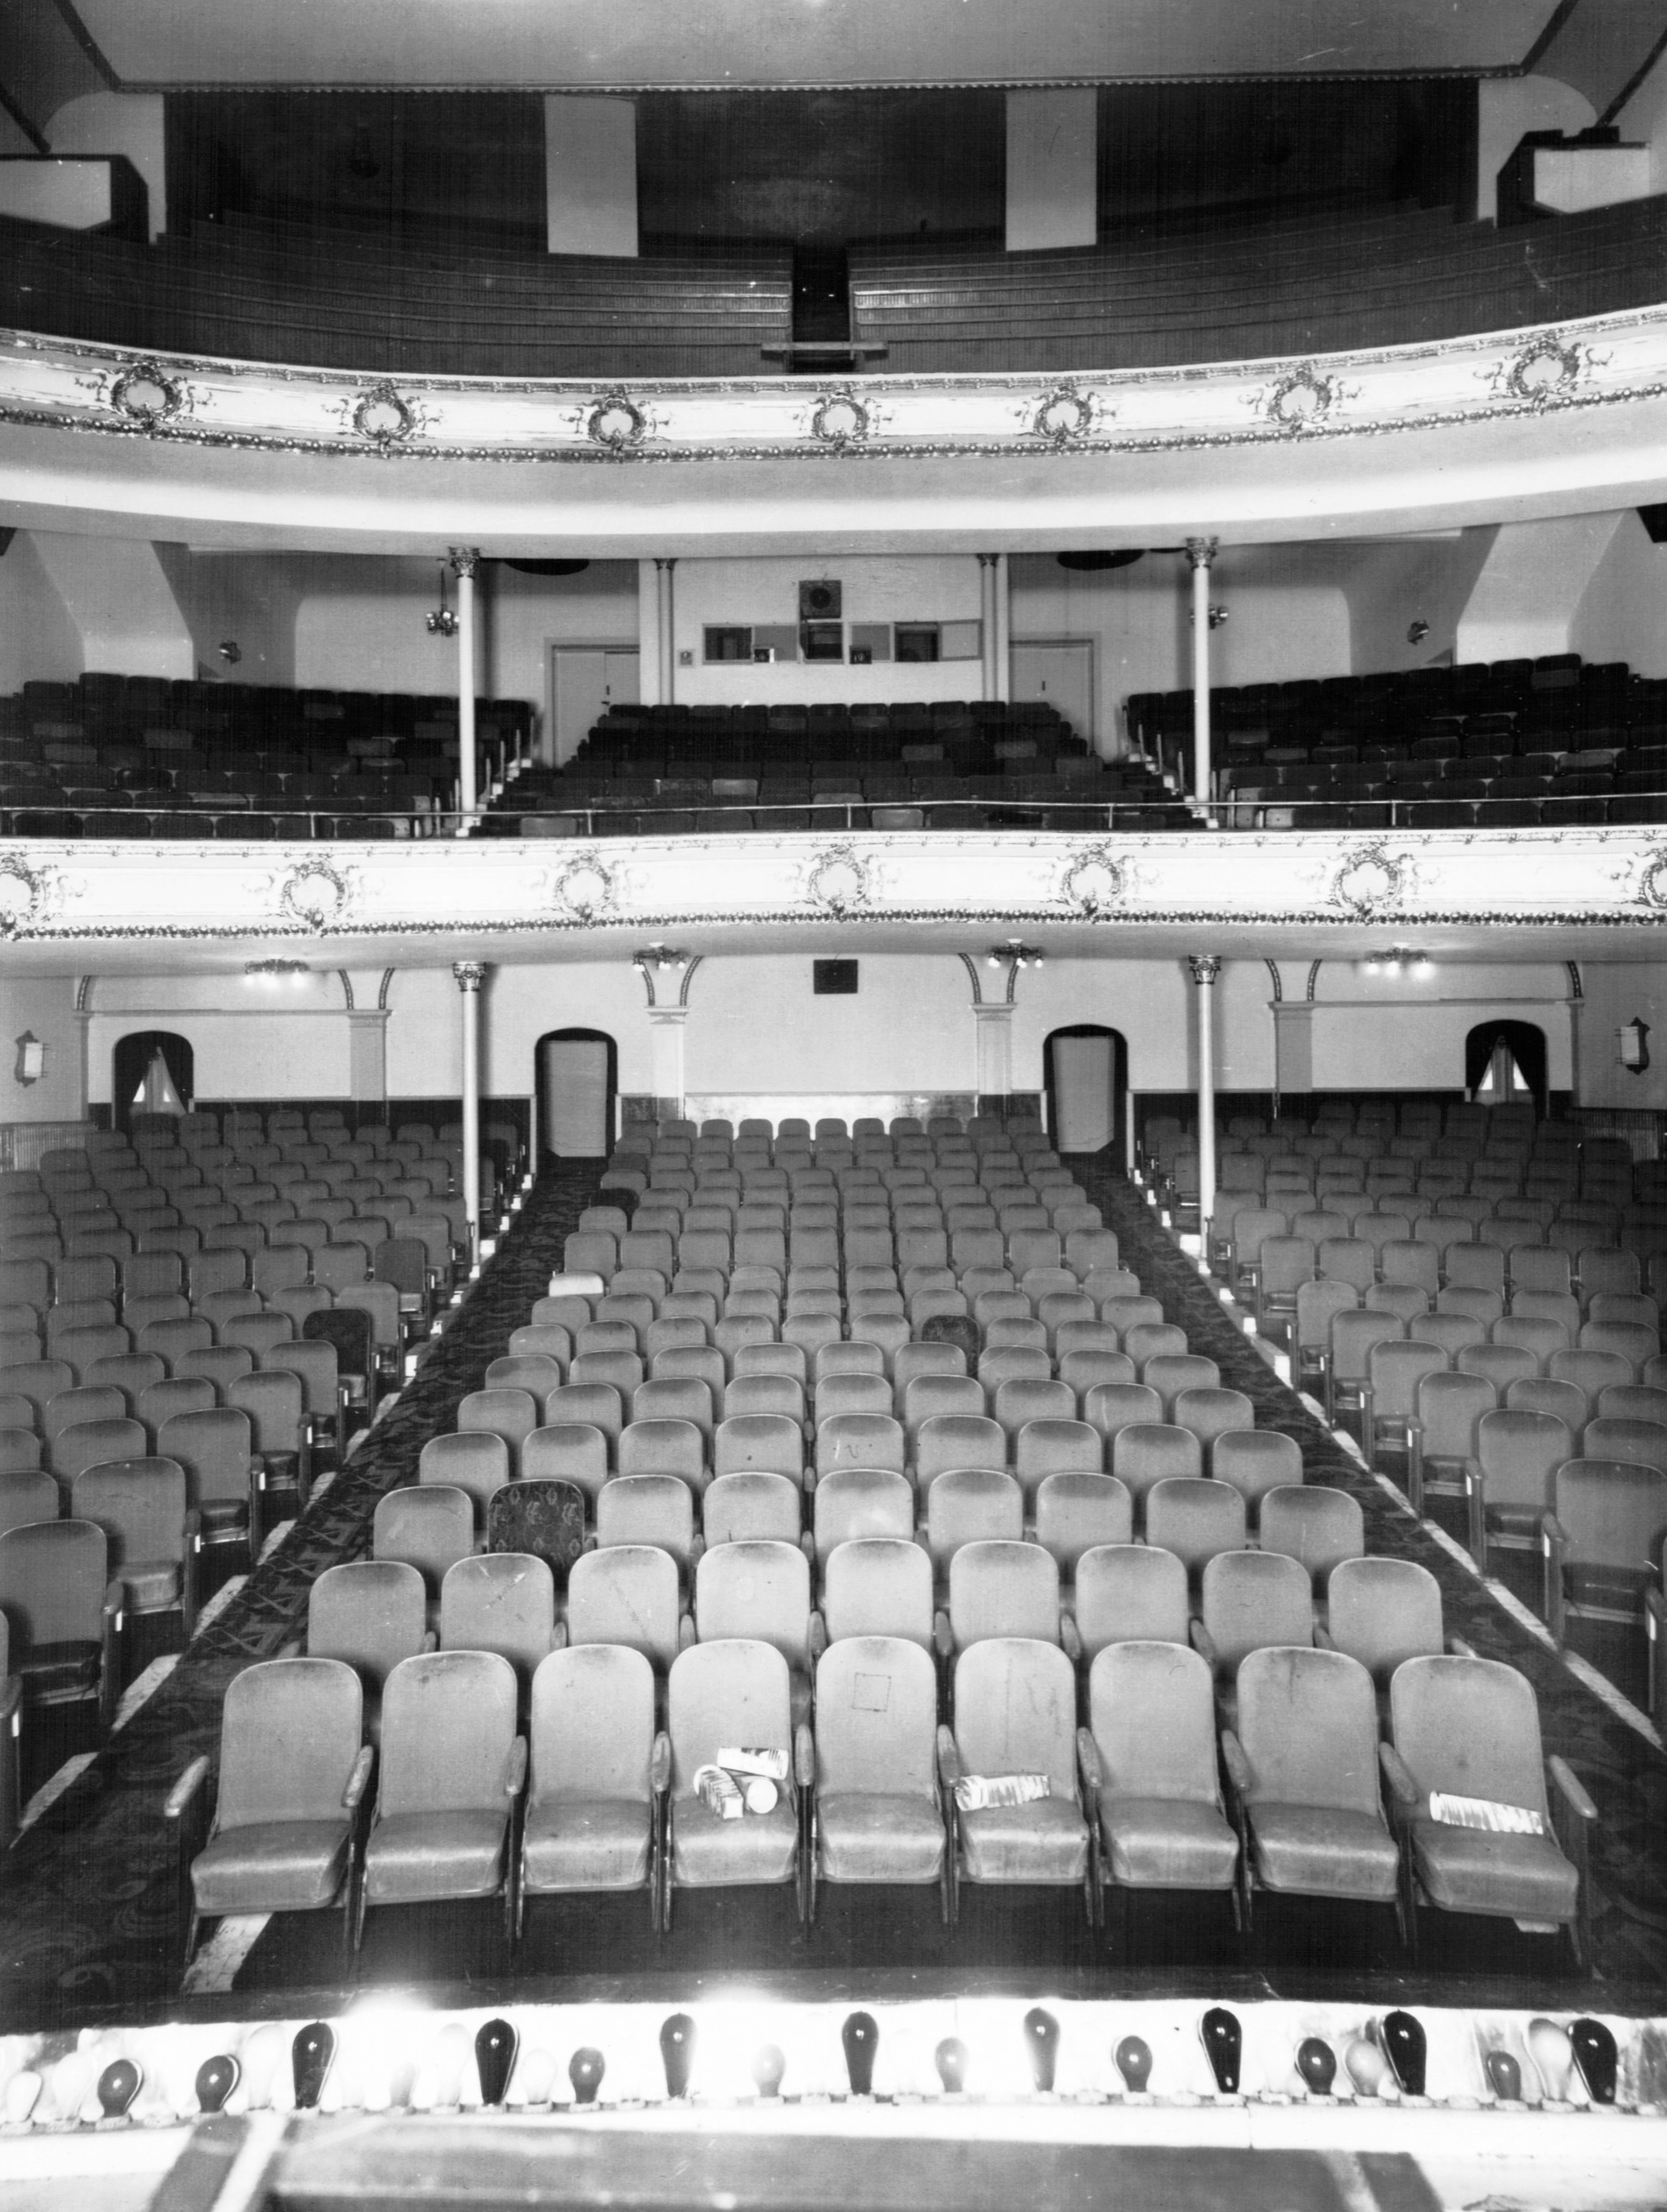 1964 view of auditorium from stage.